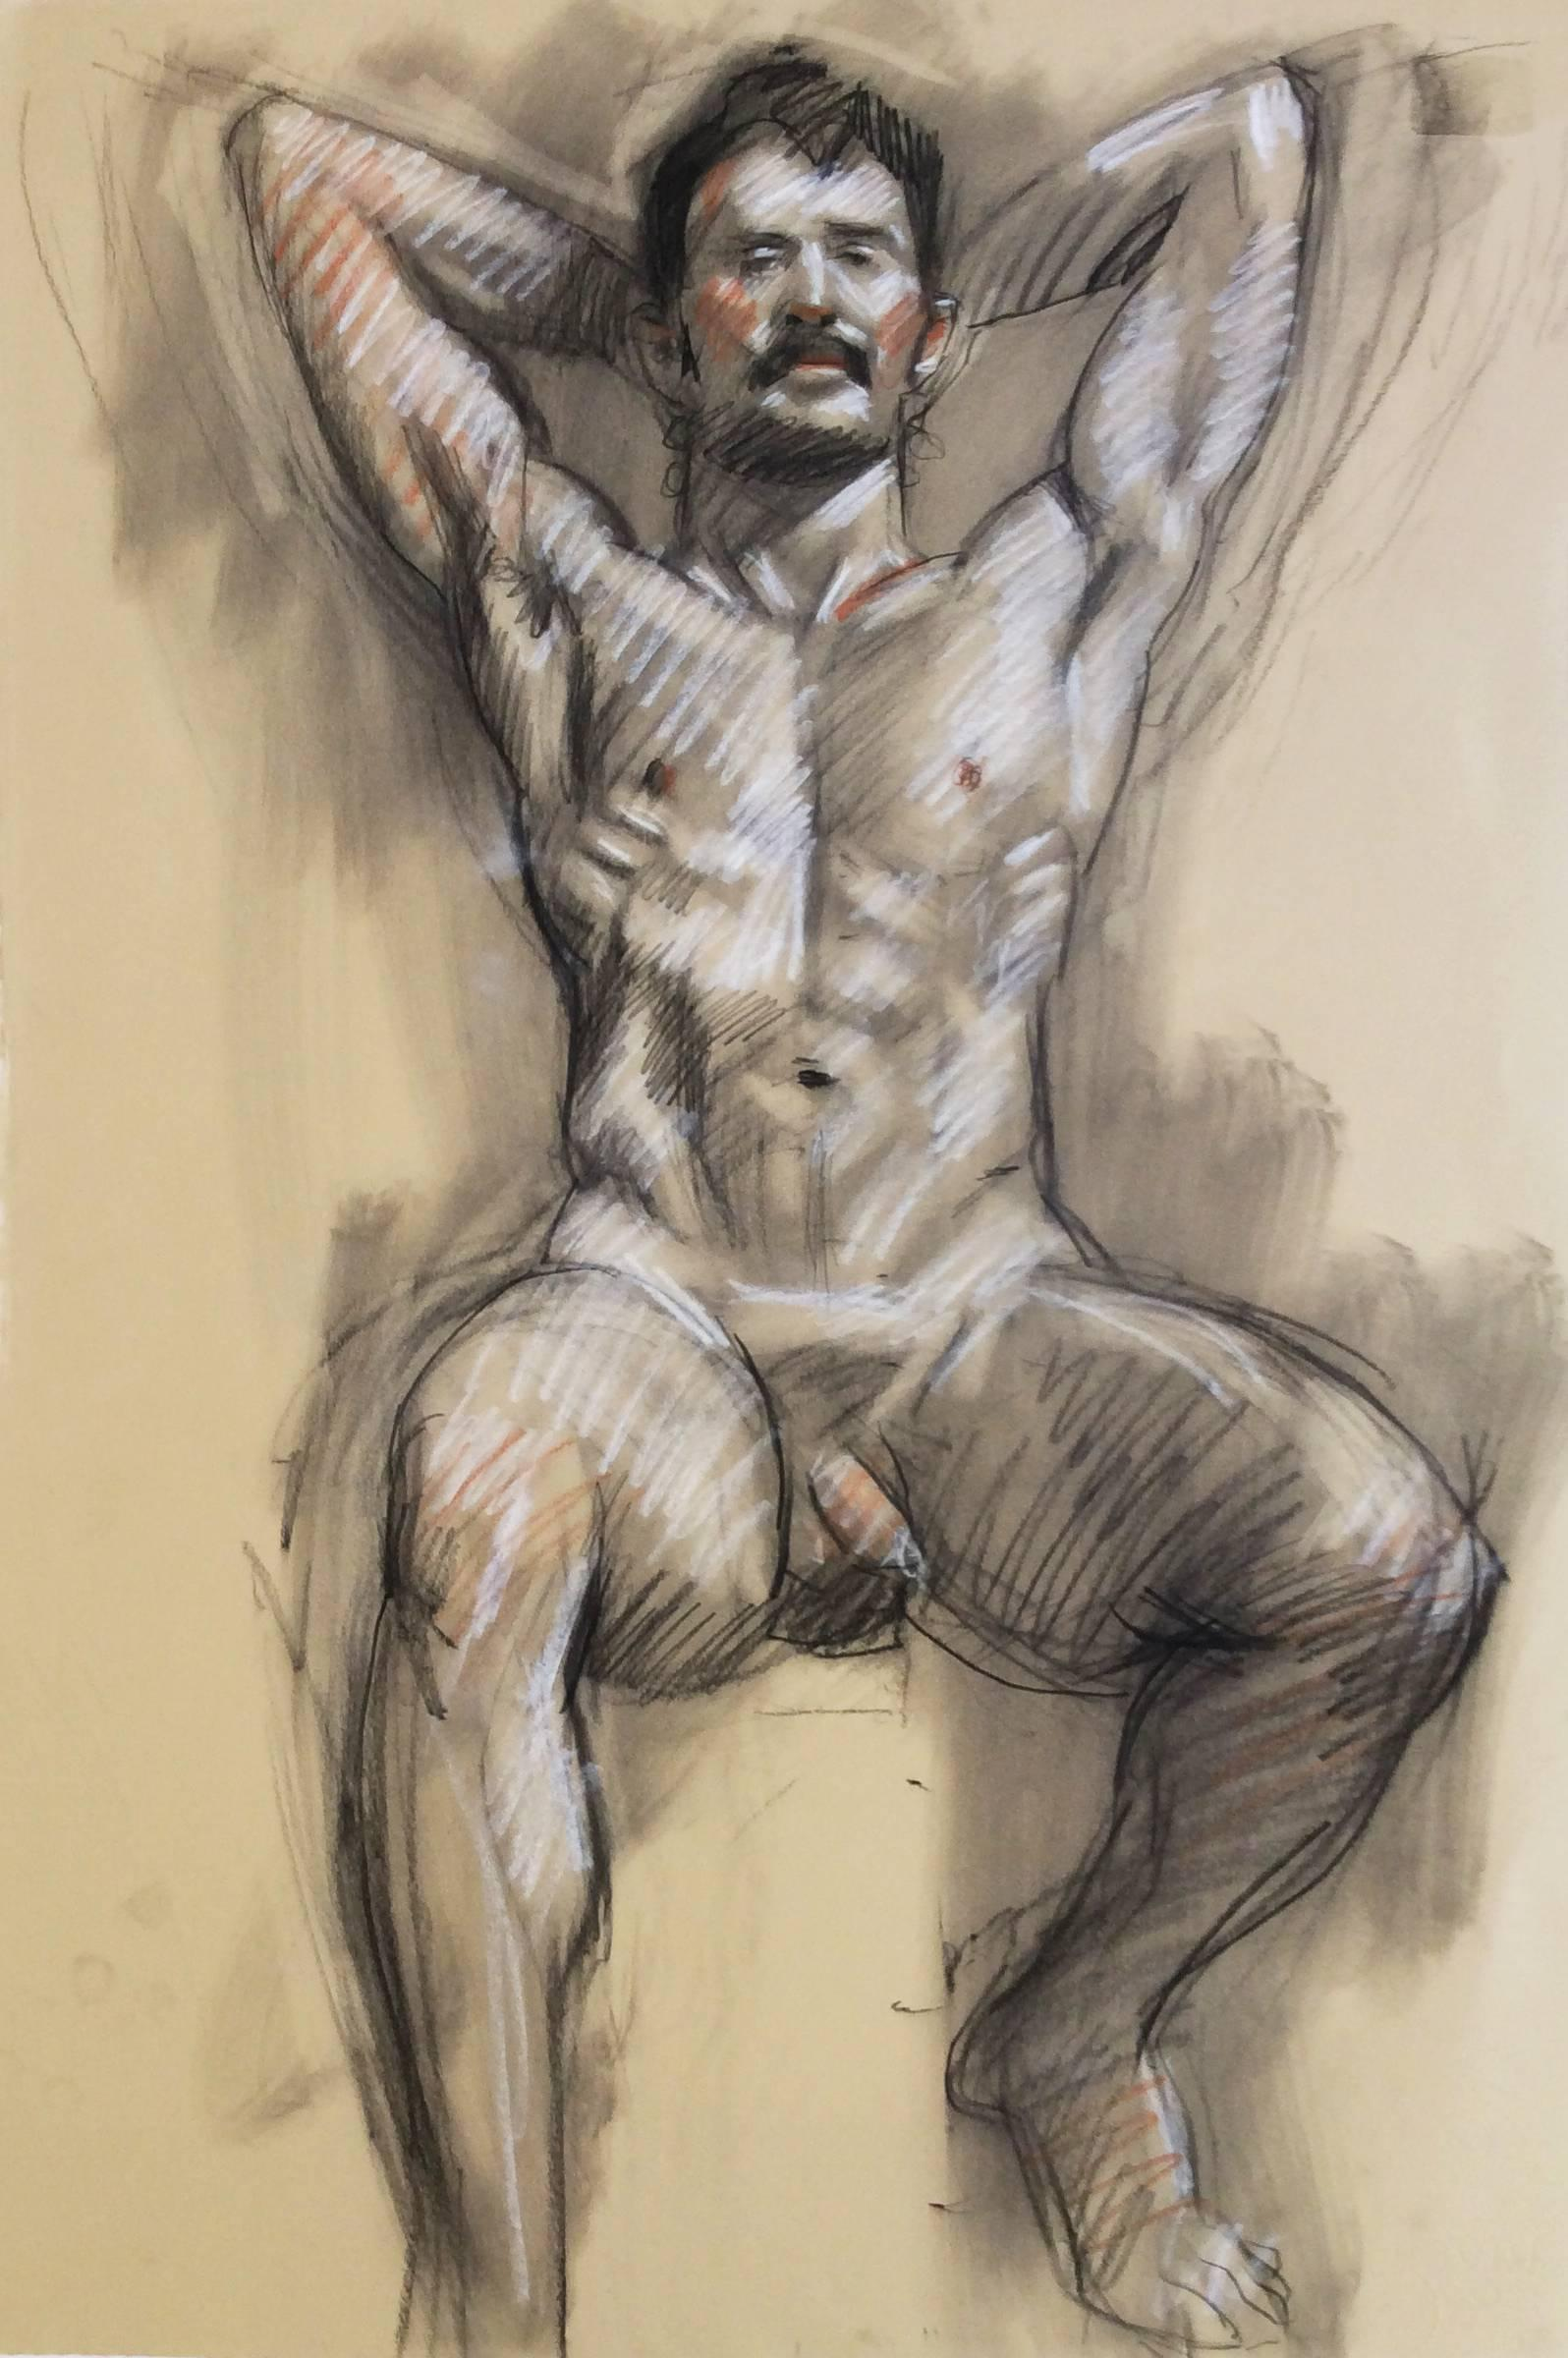 Mb 826 A (Figurative Charcoal Drawing of Male Nude on Arches Paper)